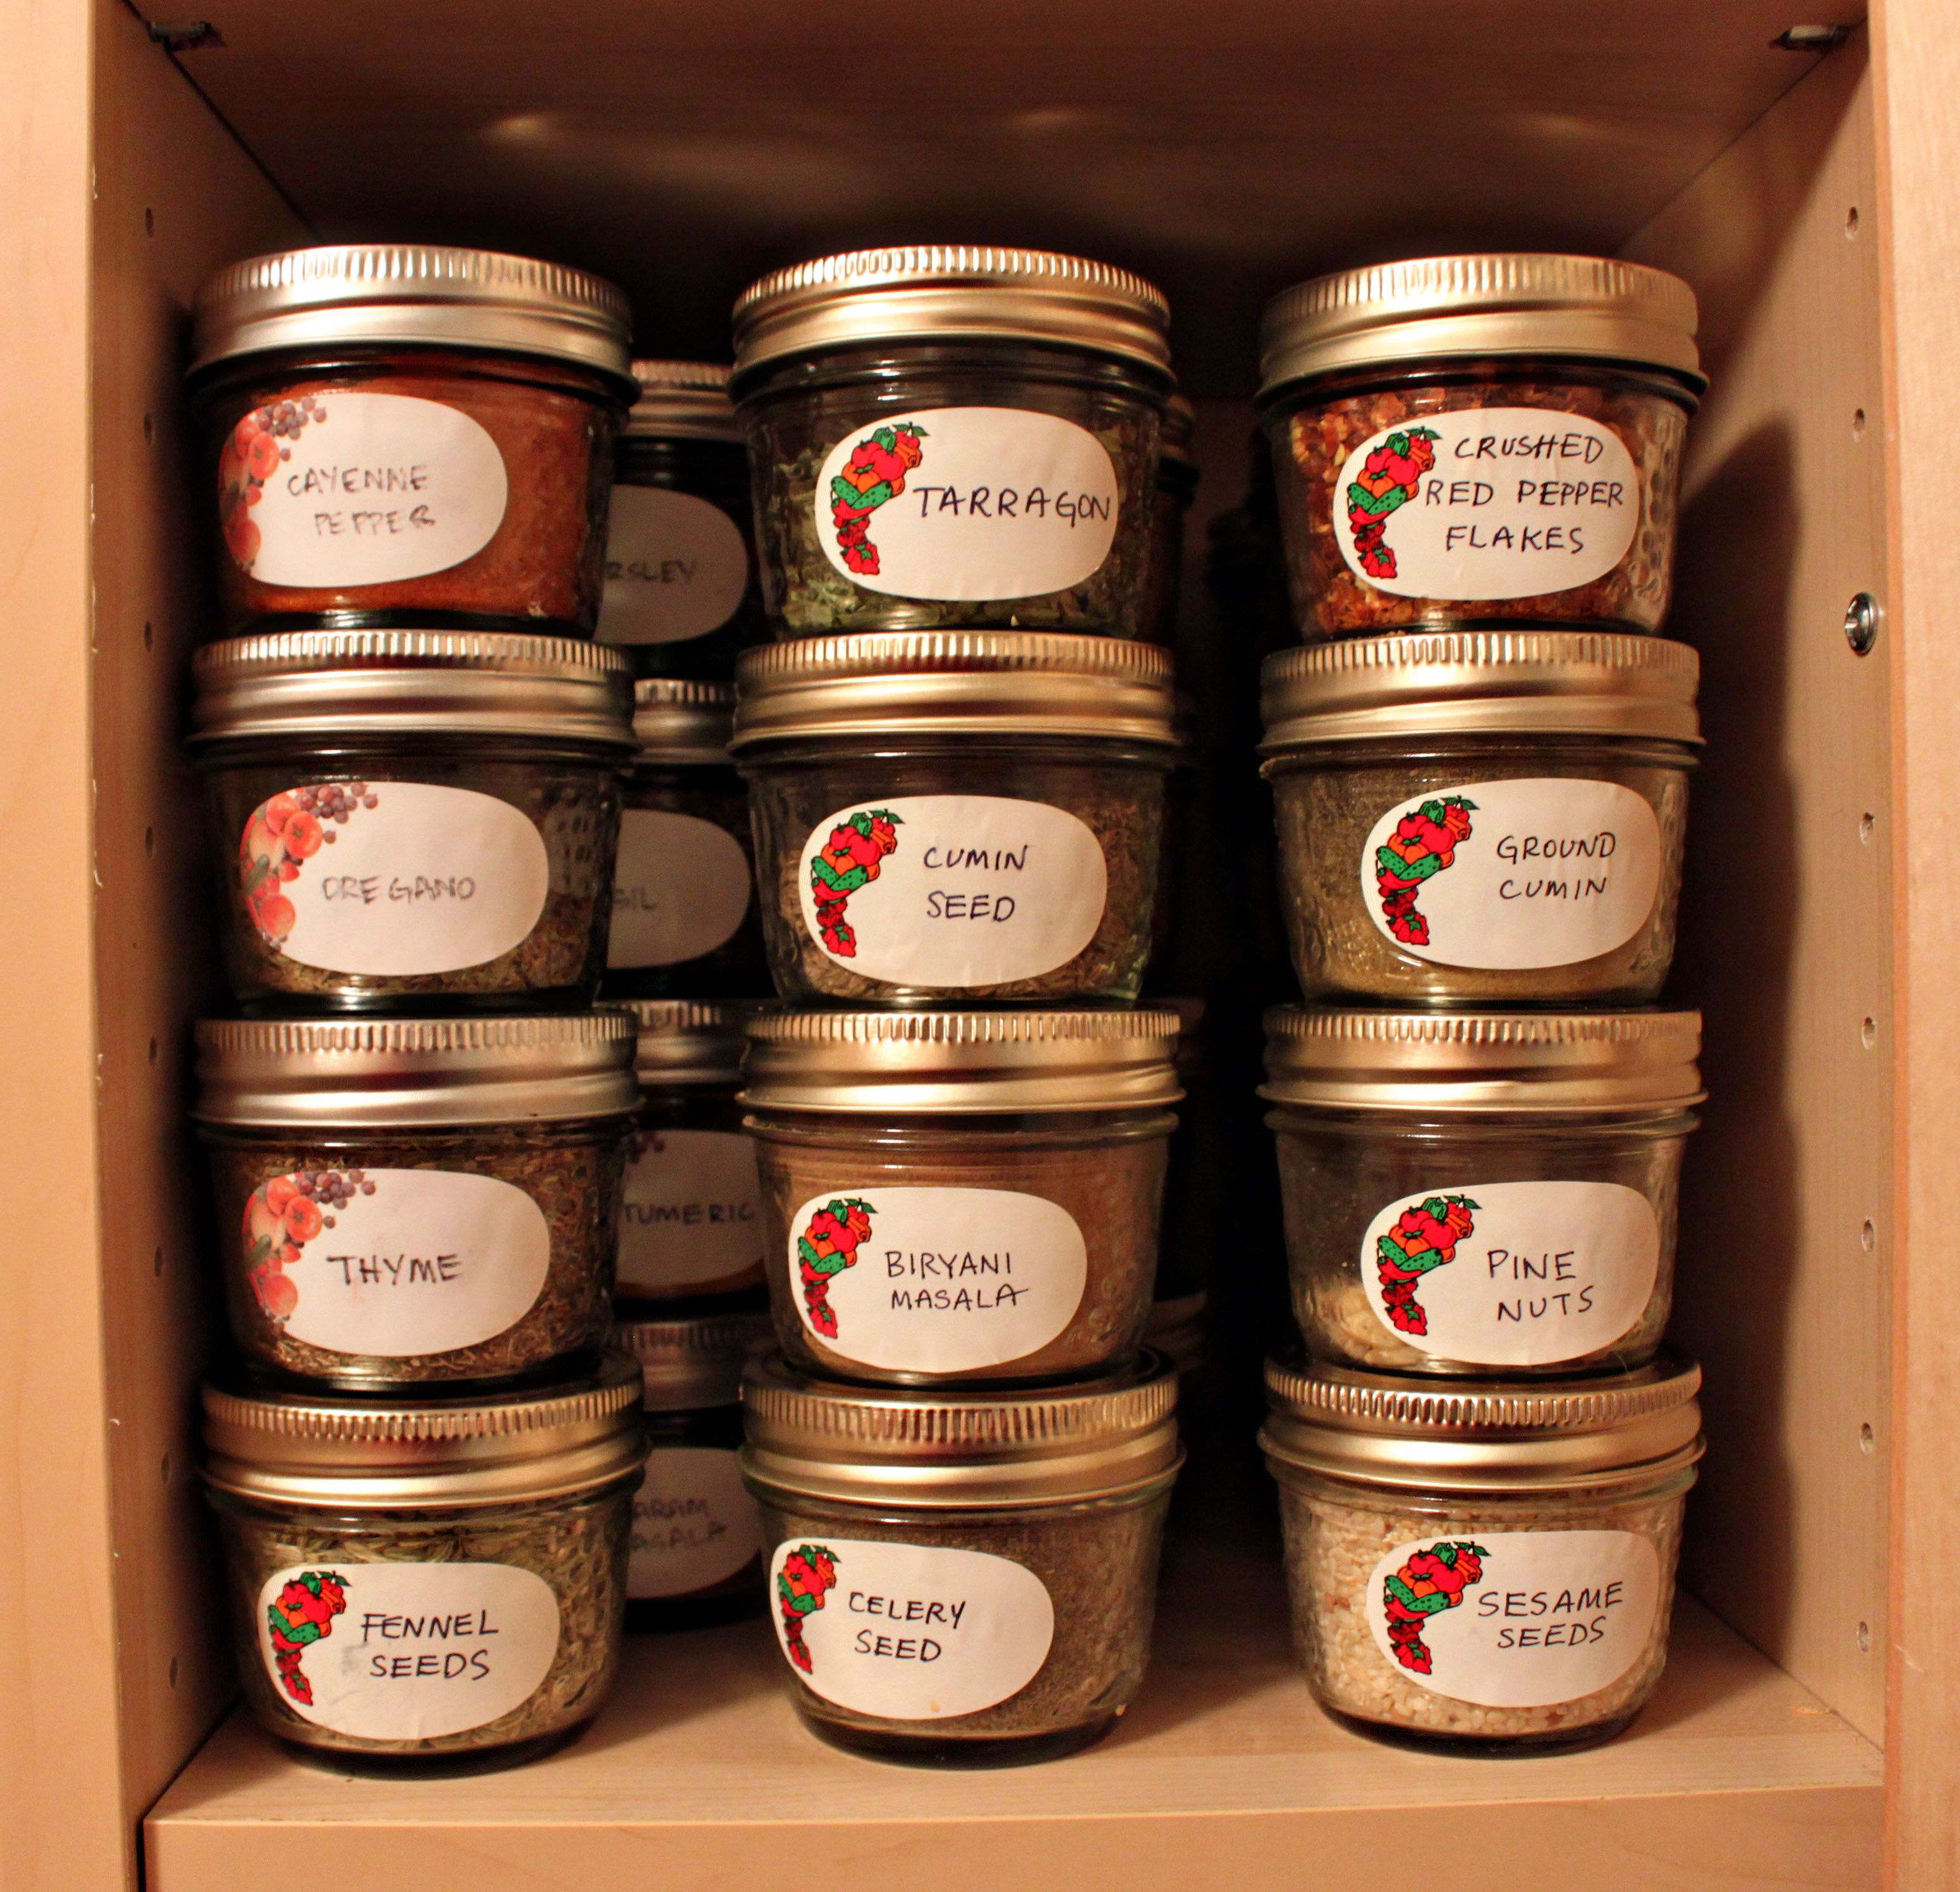 My Spice Organization Small Canning Jars Stack Perfectly And Easy To Fill With Bulk Spices Spice Organization Small Canning Jars Organization